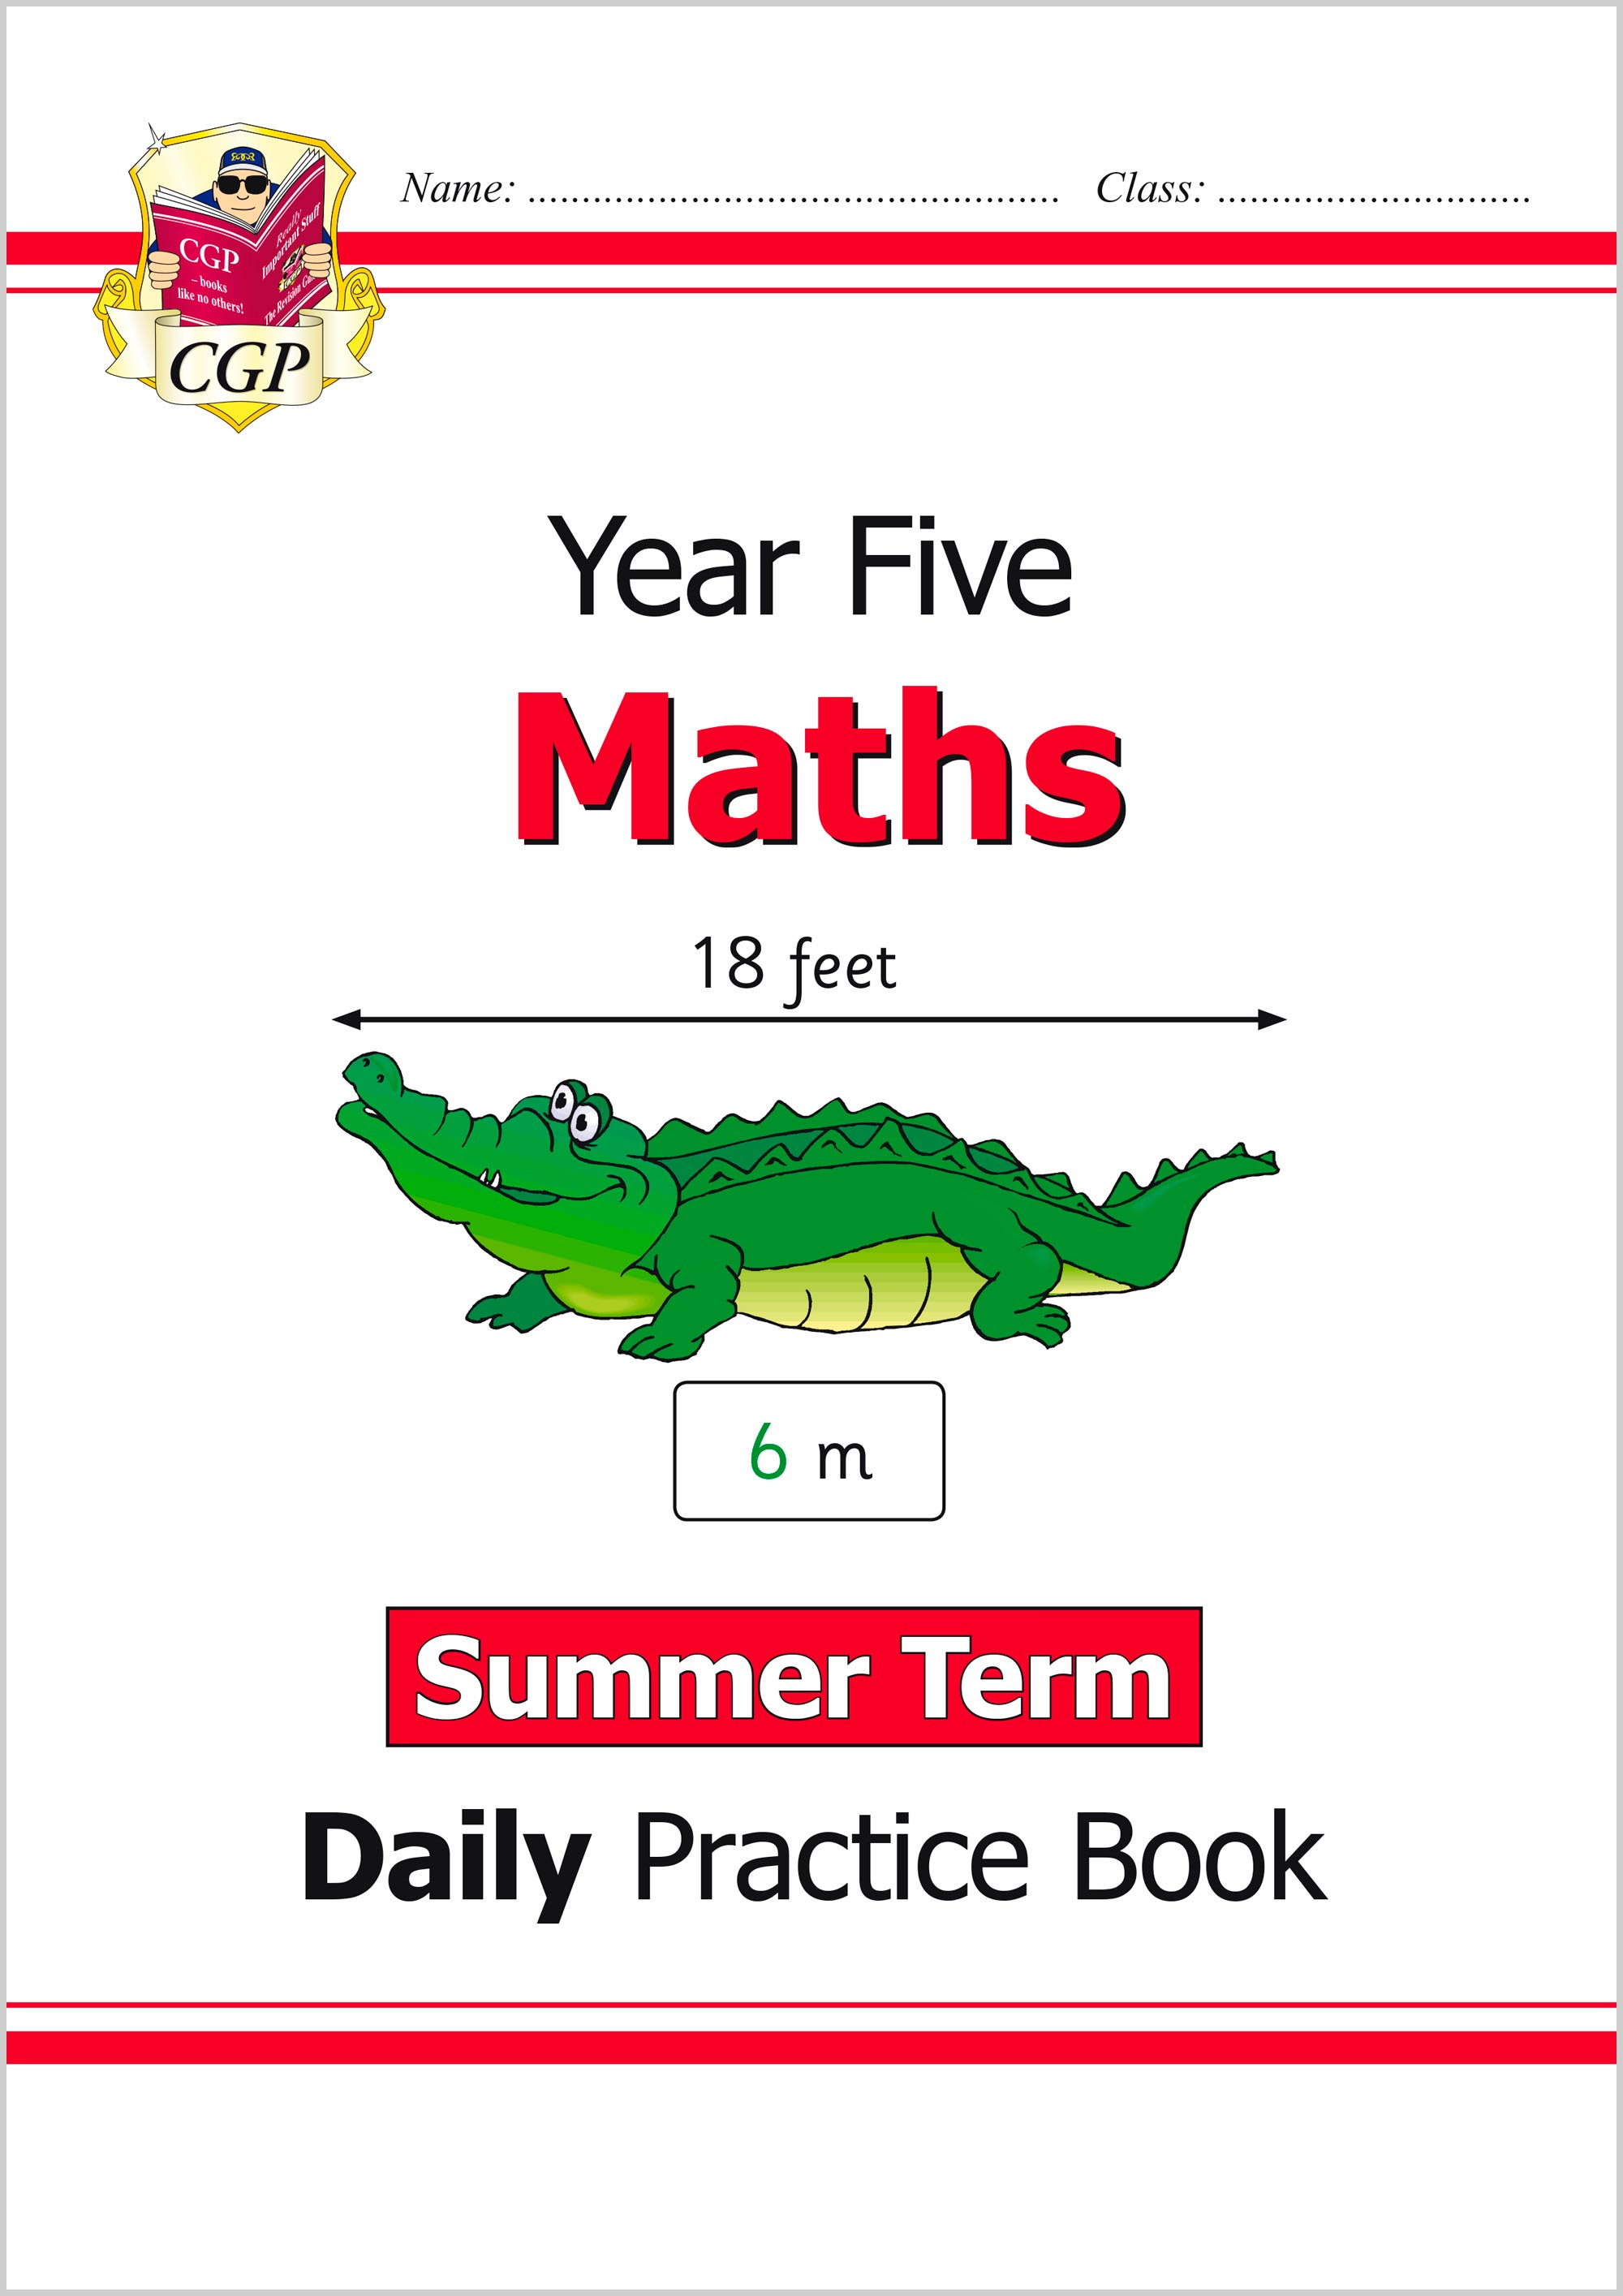 M5WSU21 - New KS2 Maths Daily Practice Book: Year 5 - Summer Term